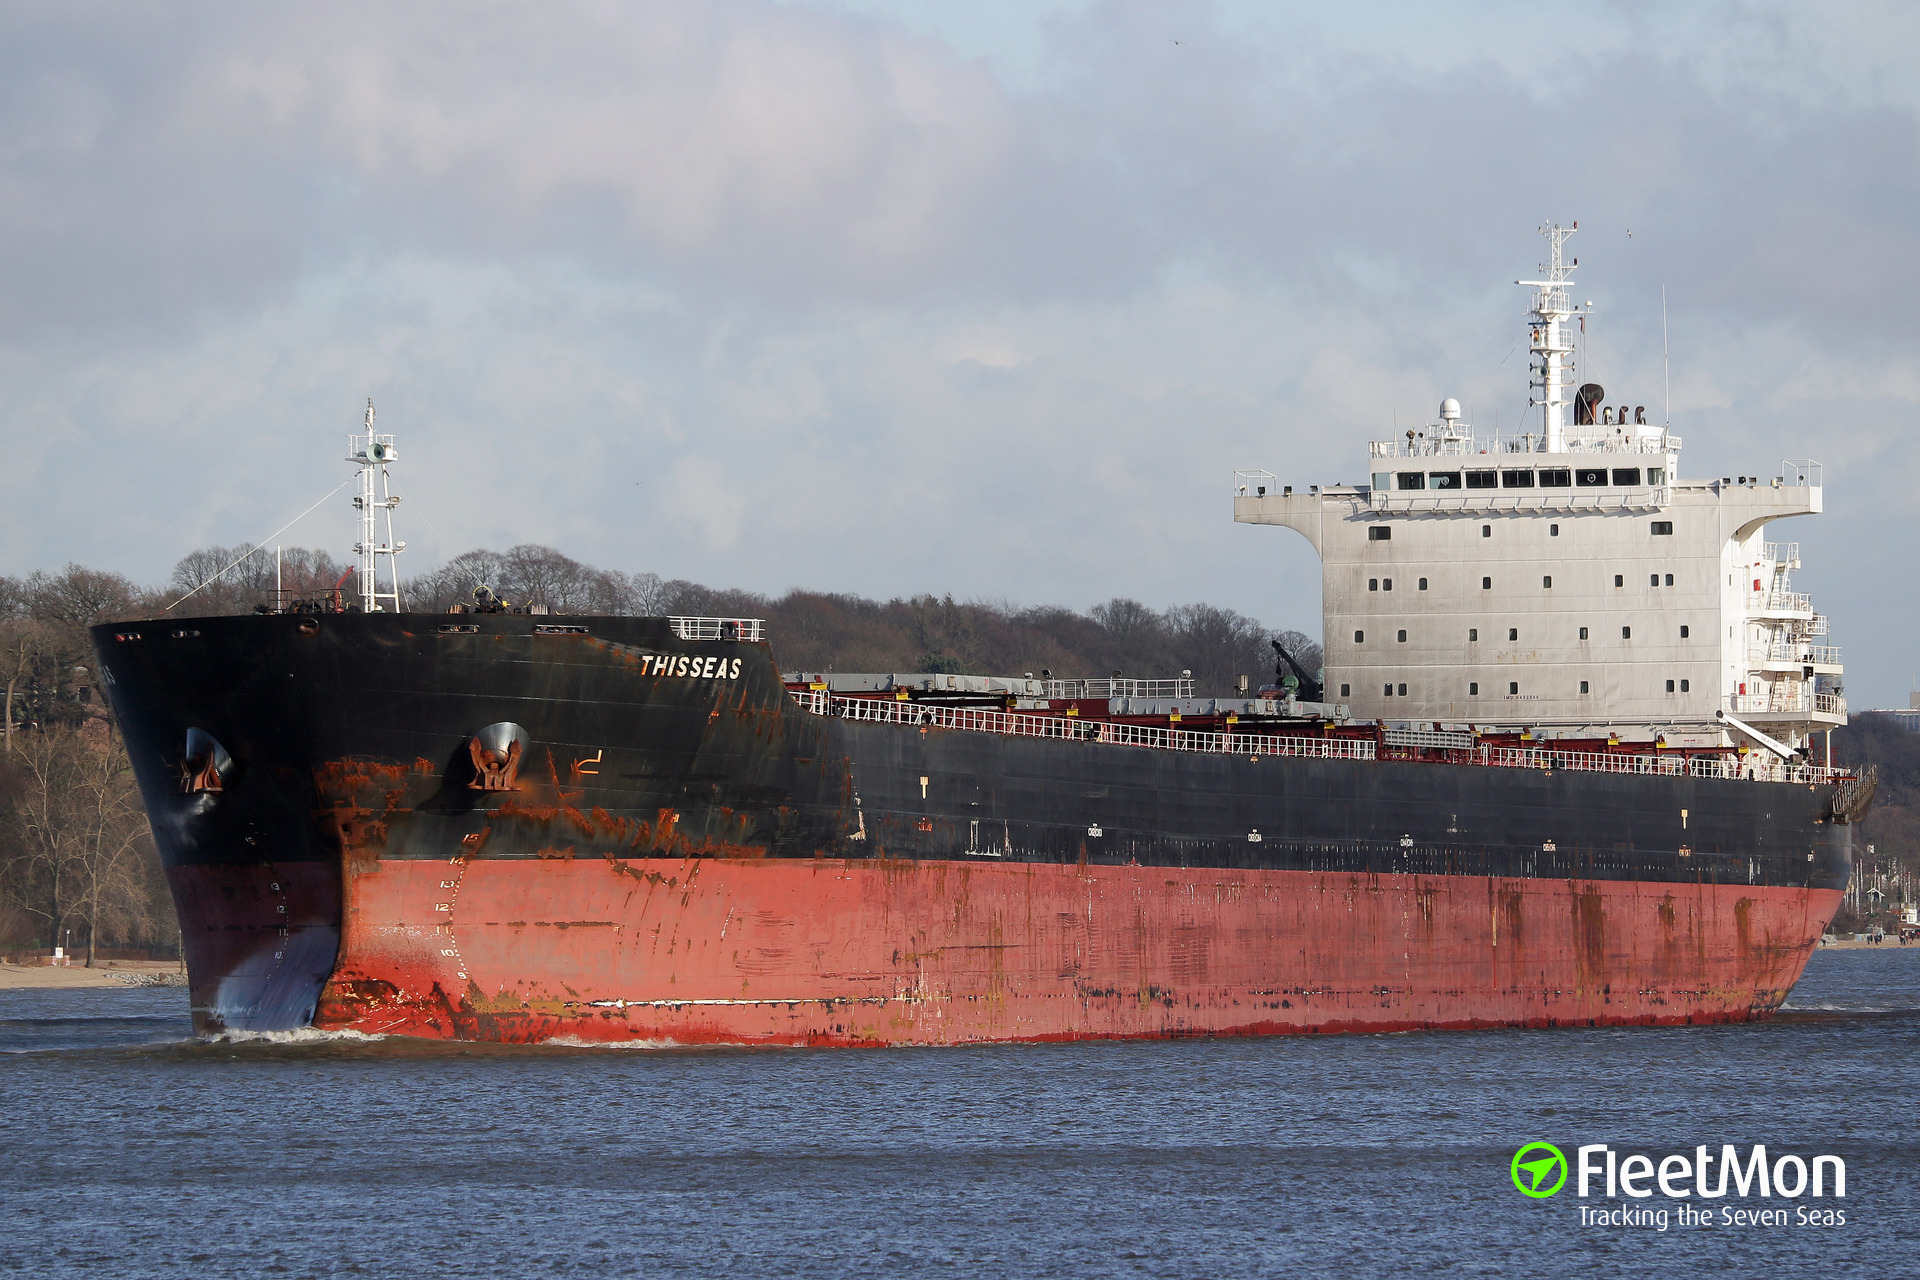 Container ship Plata Feeder collided with bulk carrier Thisseas, Parana River